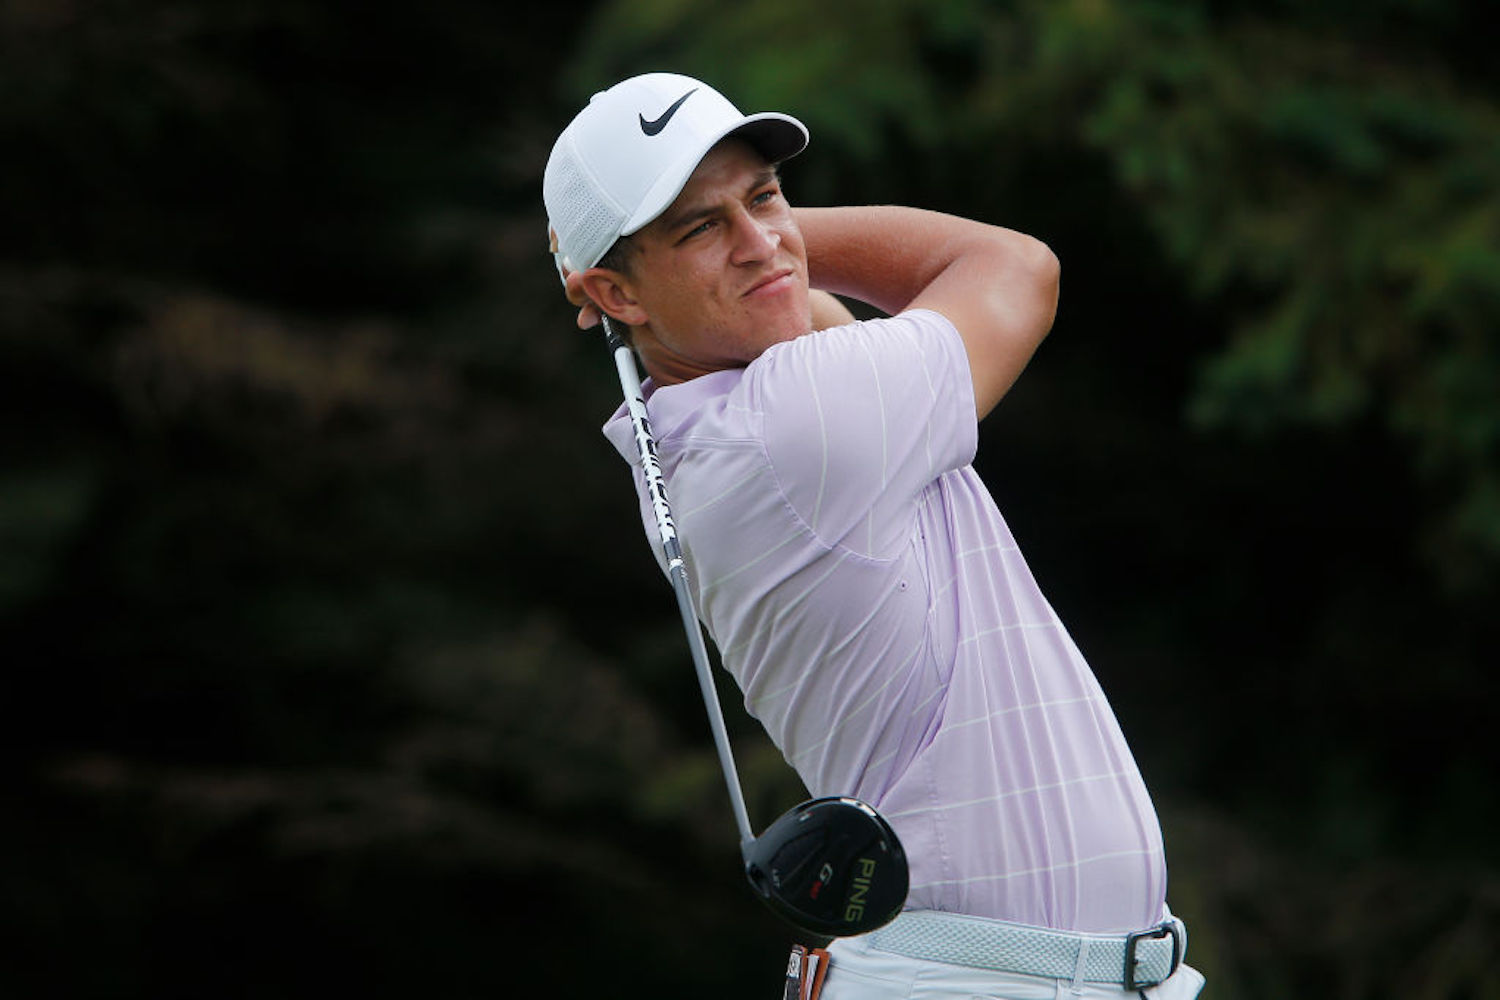 Bryson DeChambeau is the talk of the town for his massive drives, but Cameron Champ might be even more impressive off the tee.